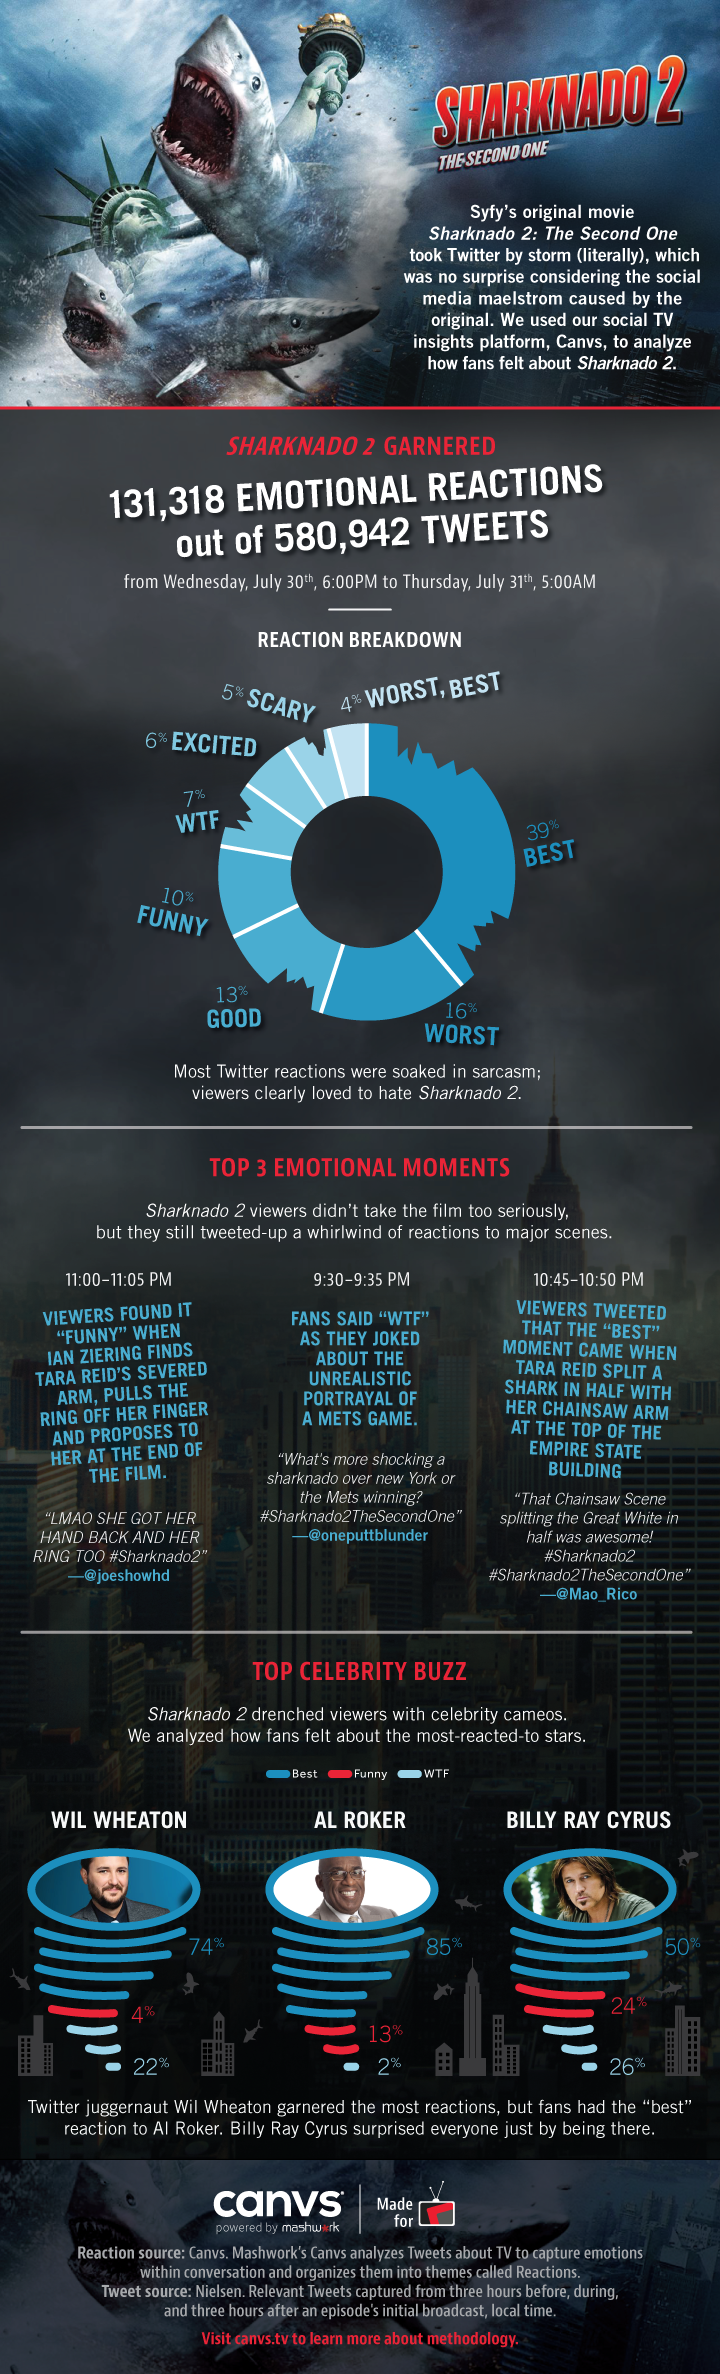 Sharknado_Infographic